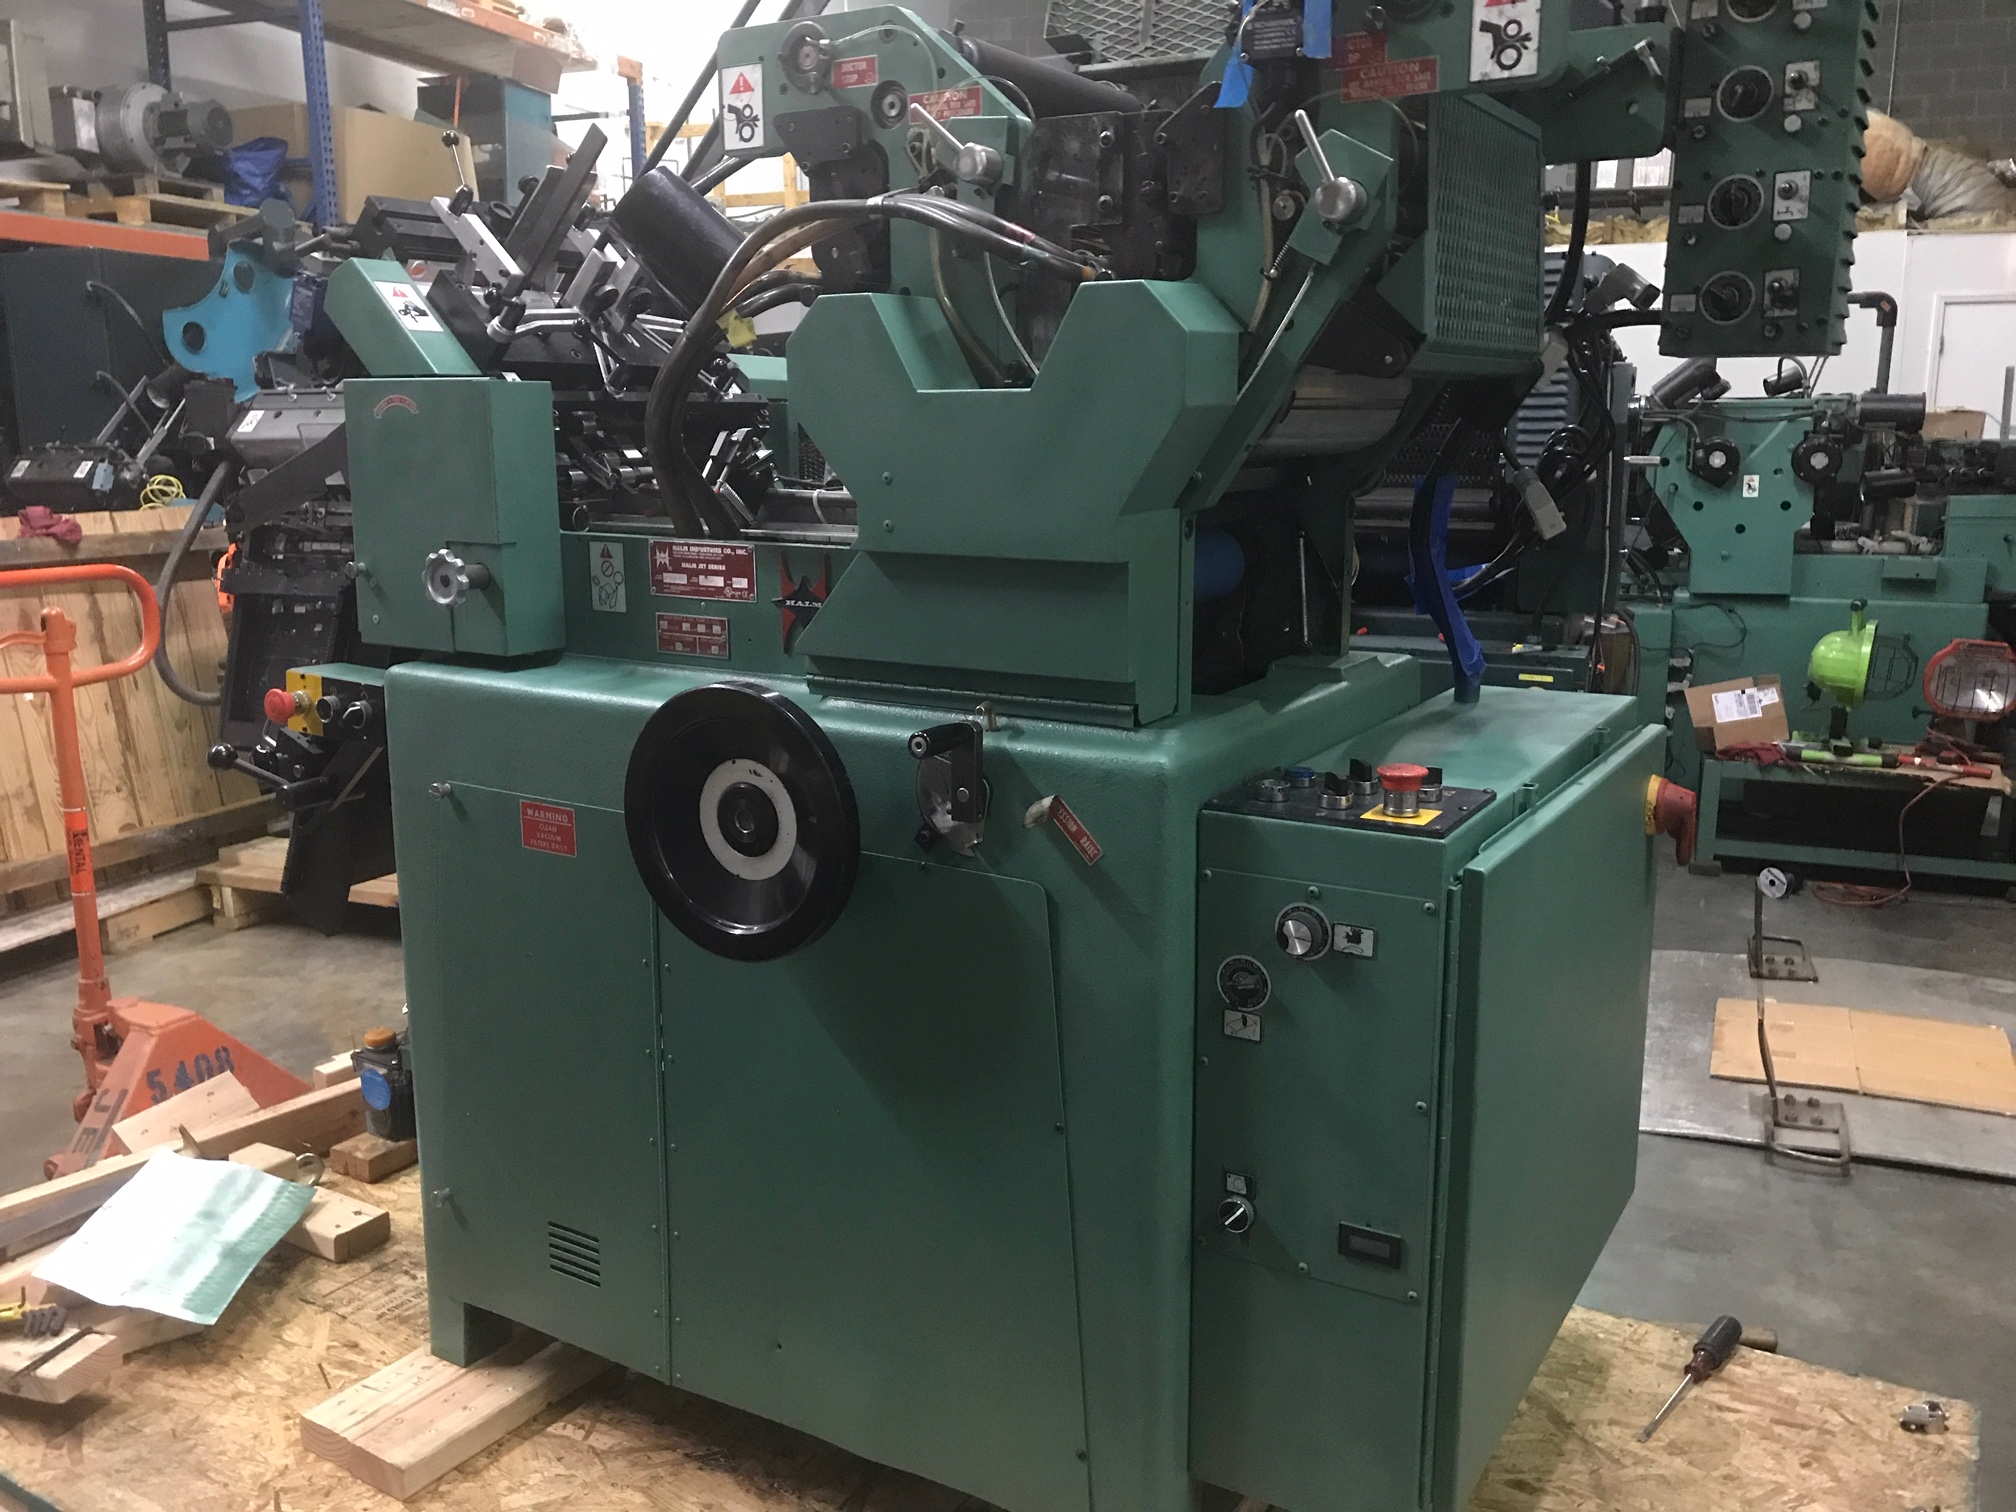 2013 Halm super jet press 2 col perf mdl JP-TWOD-6D sn 374rm REBUILT LIKE NEW